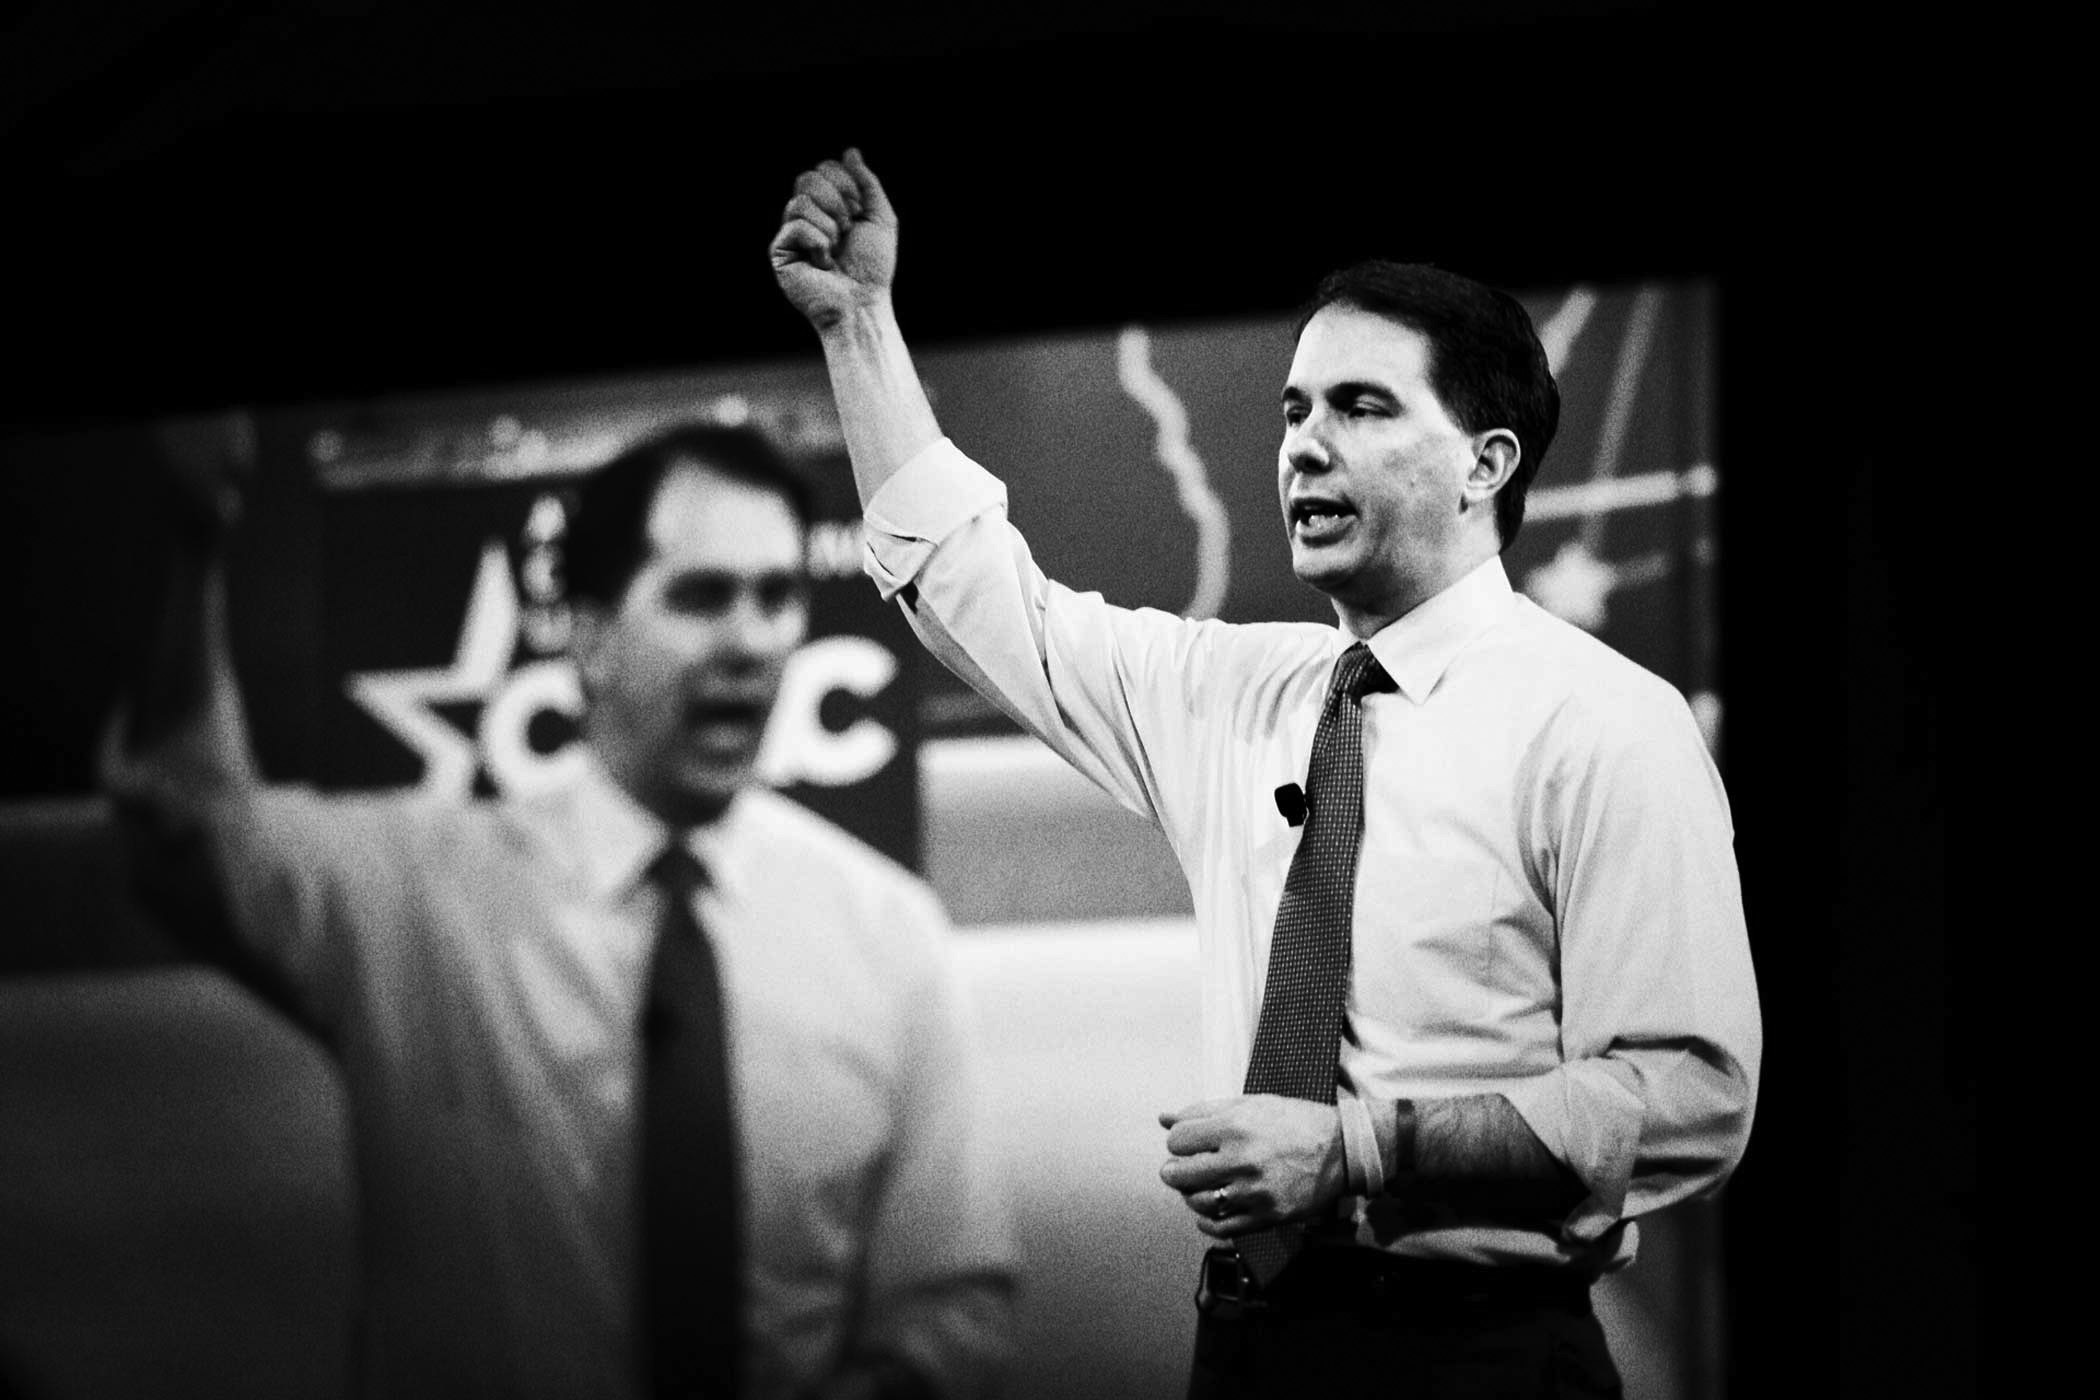 Wisconsin Governor Scott Walker at CPAC in National Harbor, Md., on Feb. 26, 2015.